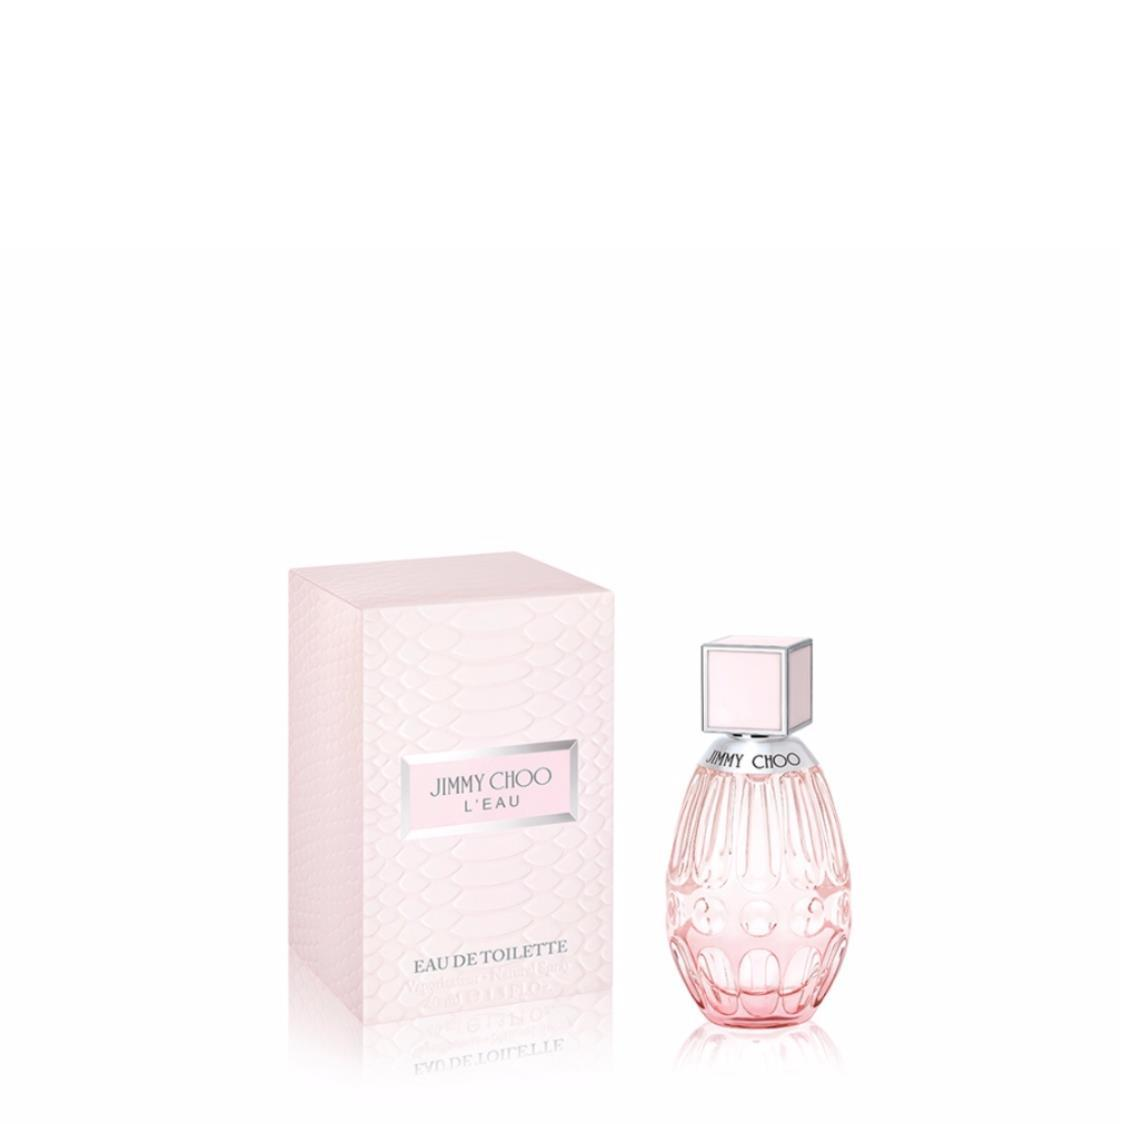 Jimmy Choo LEau EDT